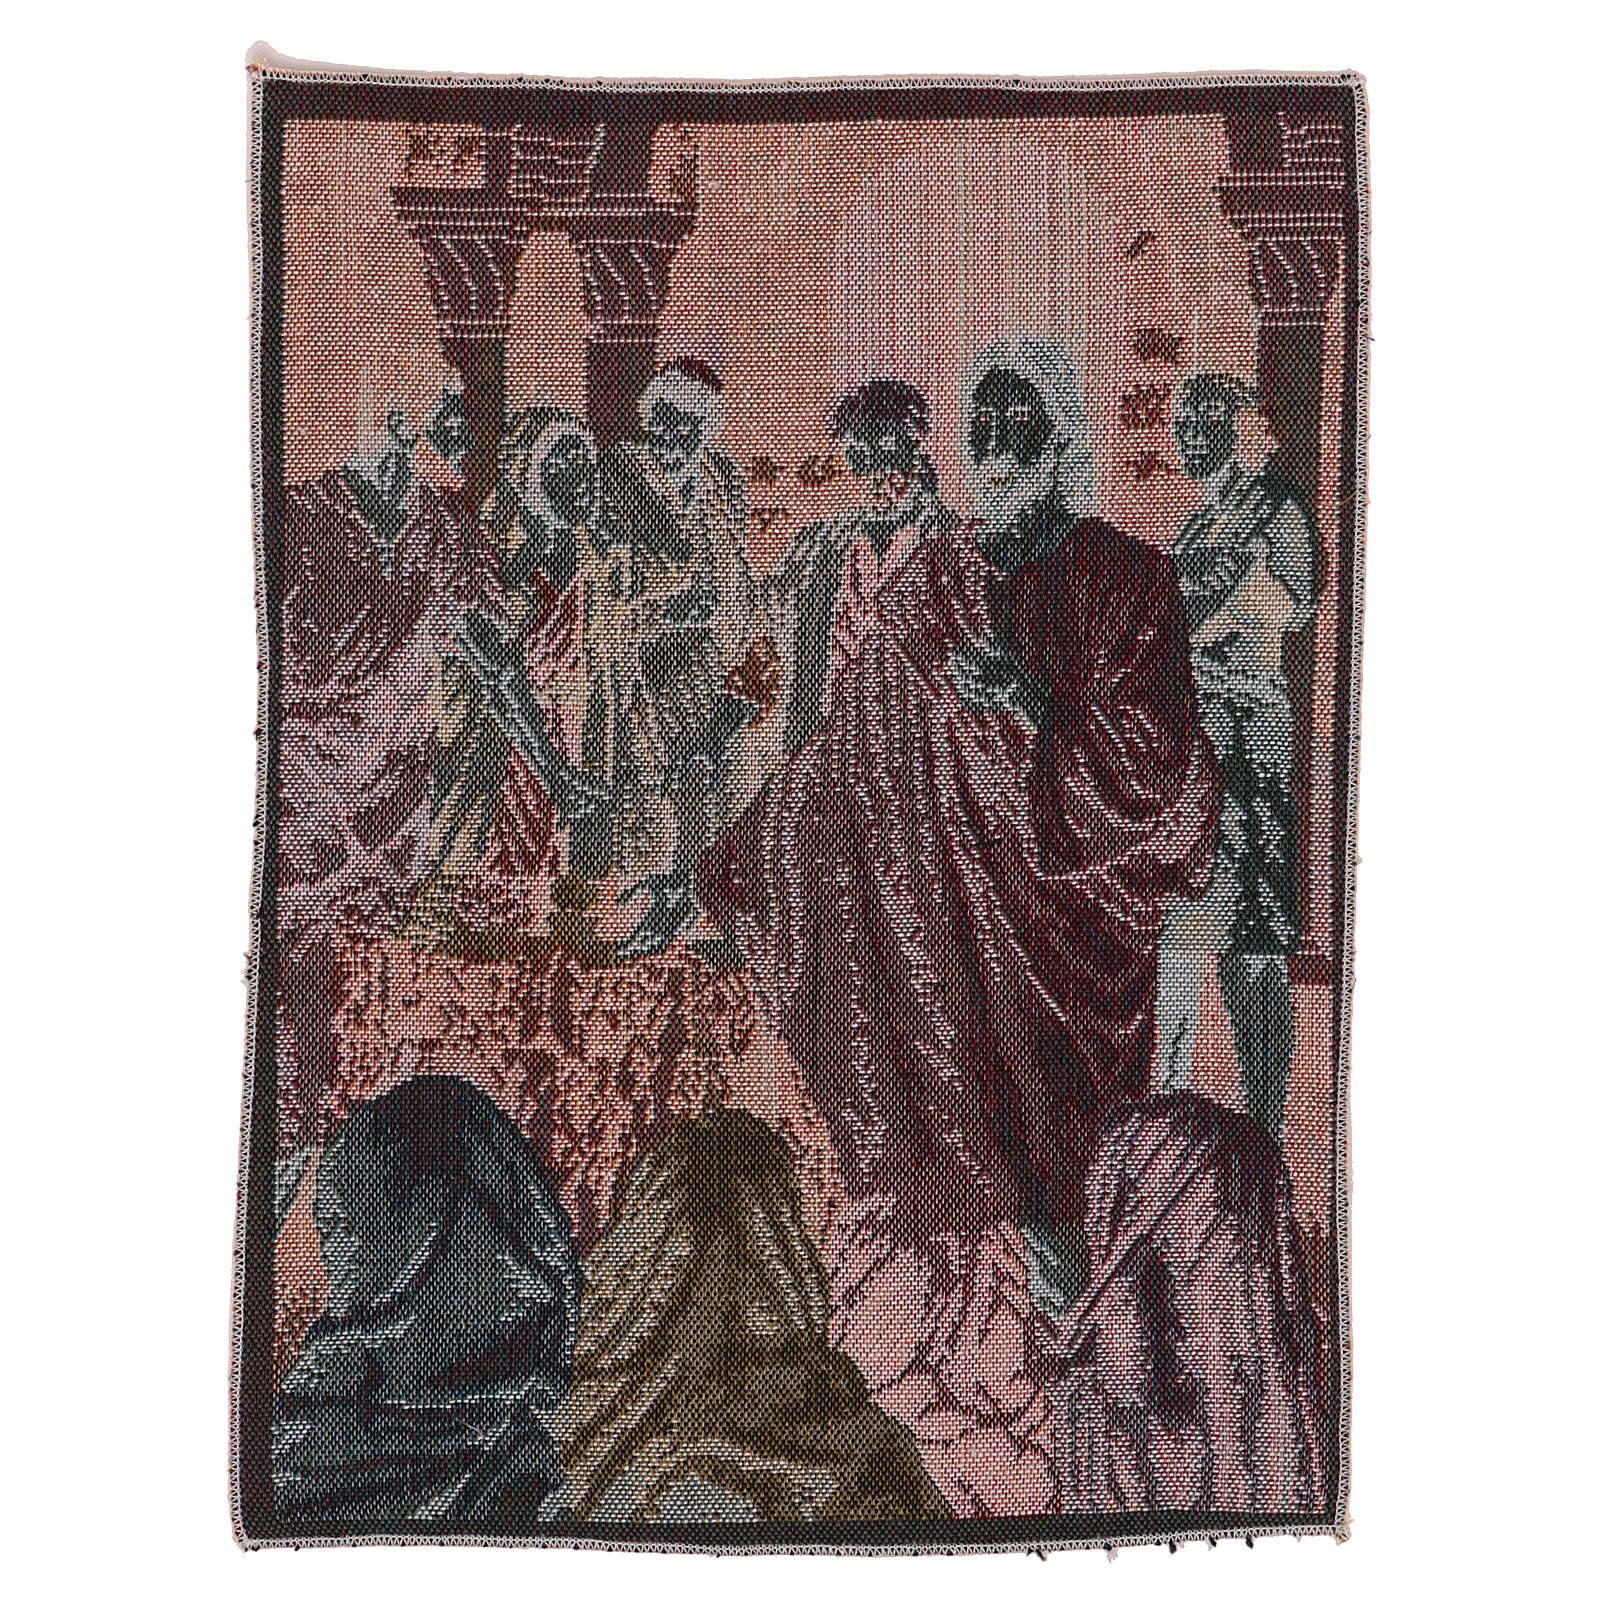 Proclamation of the kingdom of God tapestry 15x12